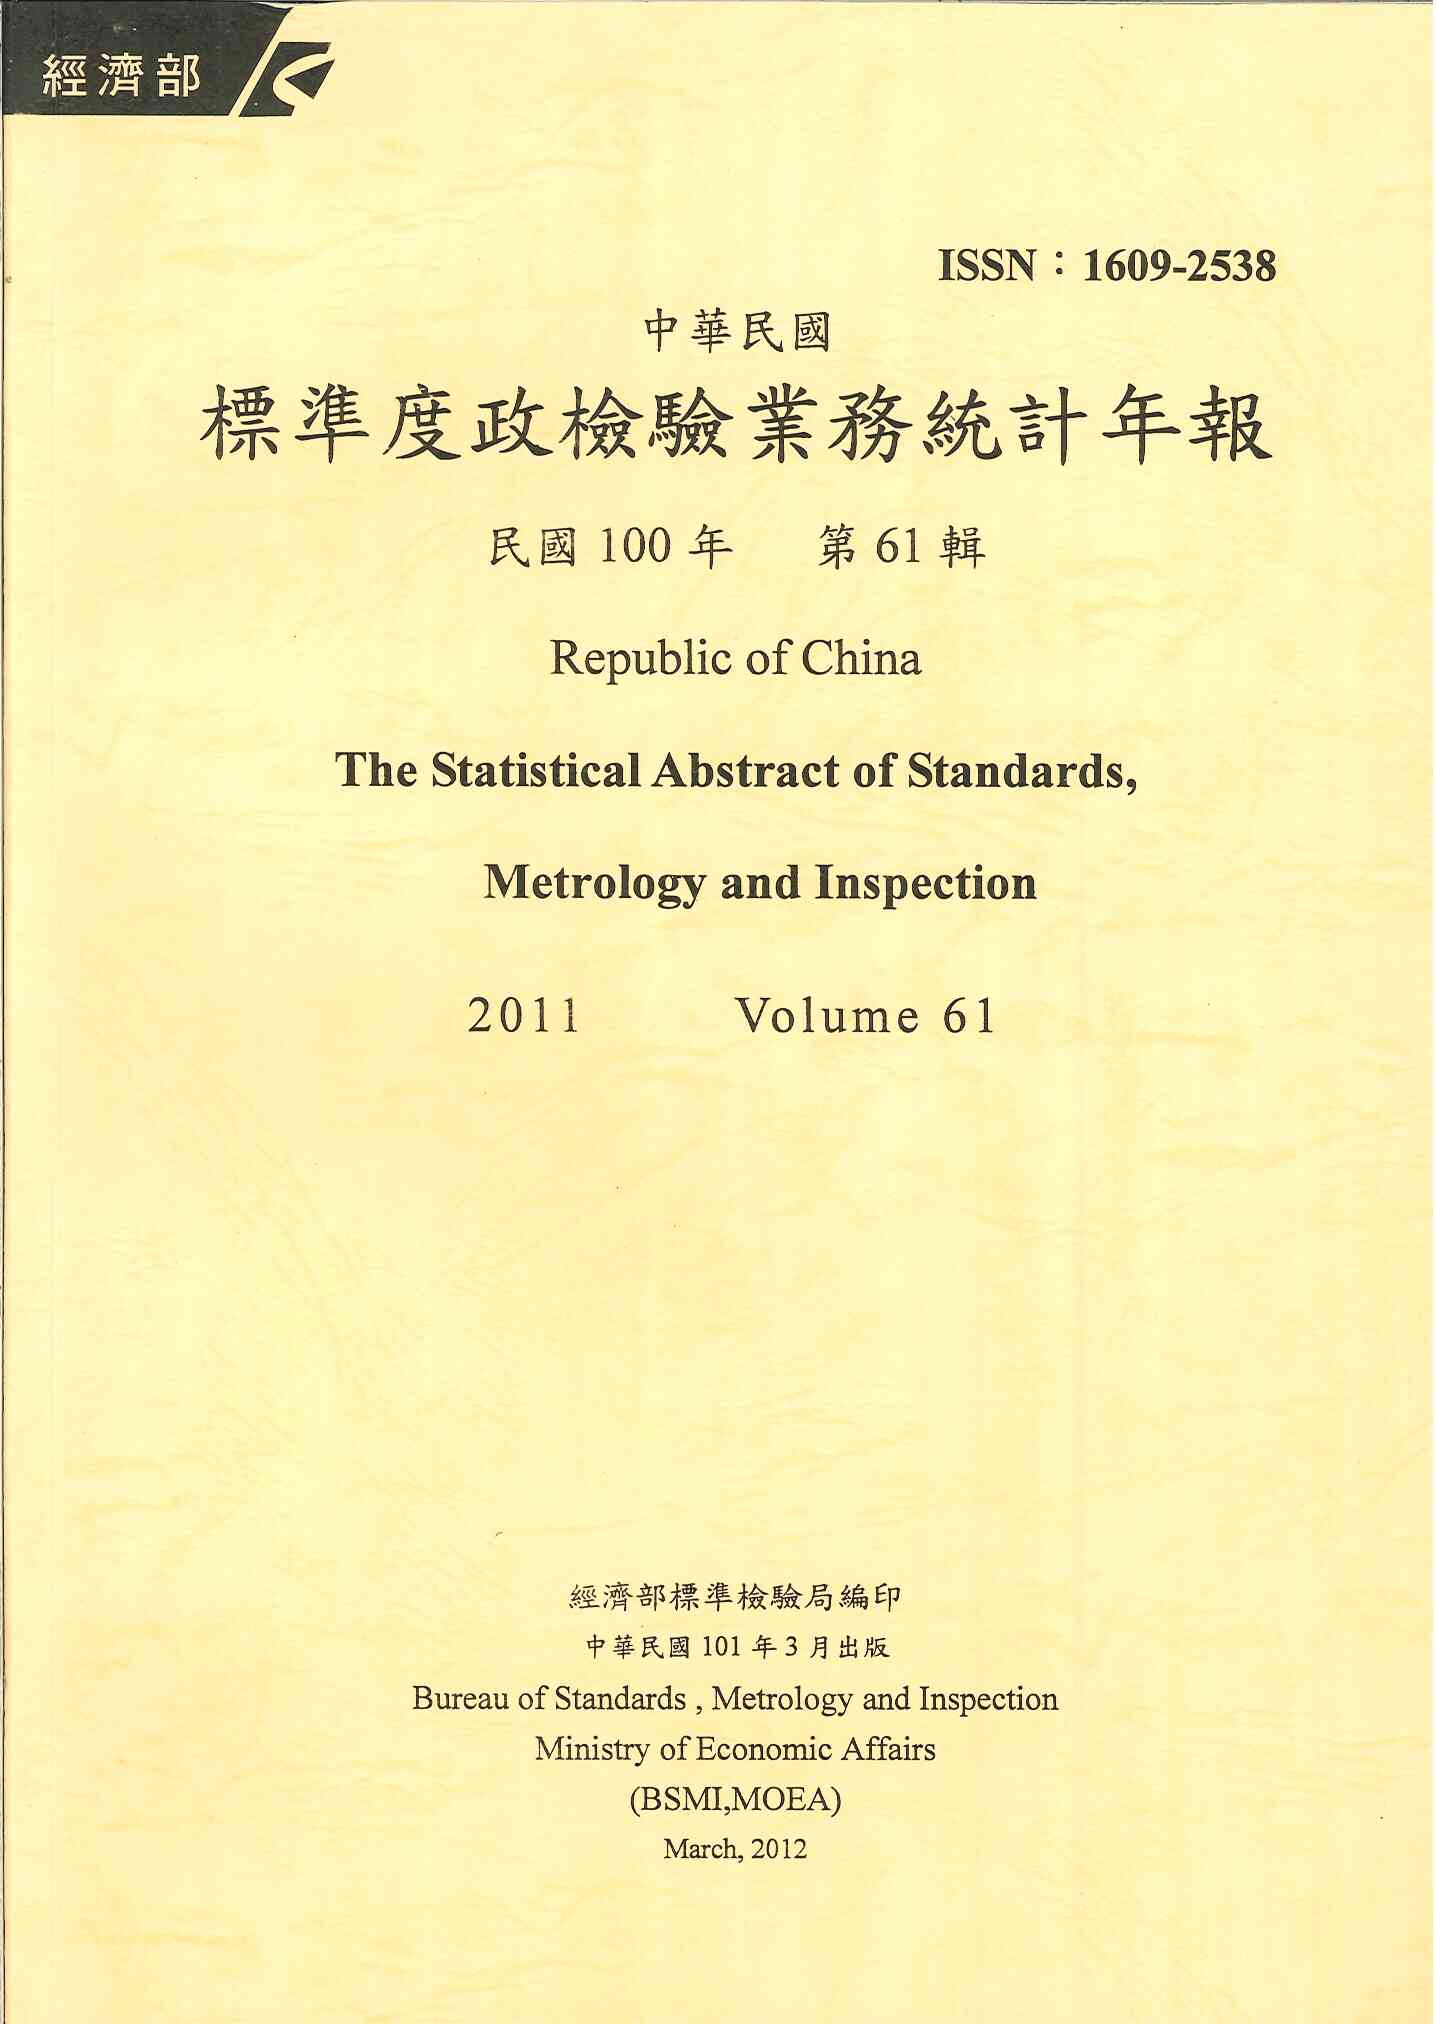 標準度政檢驗業務統計年報=The Statistical abstract of standards, metrology and inspection